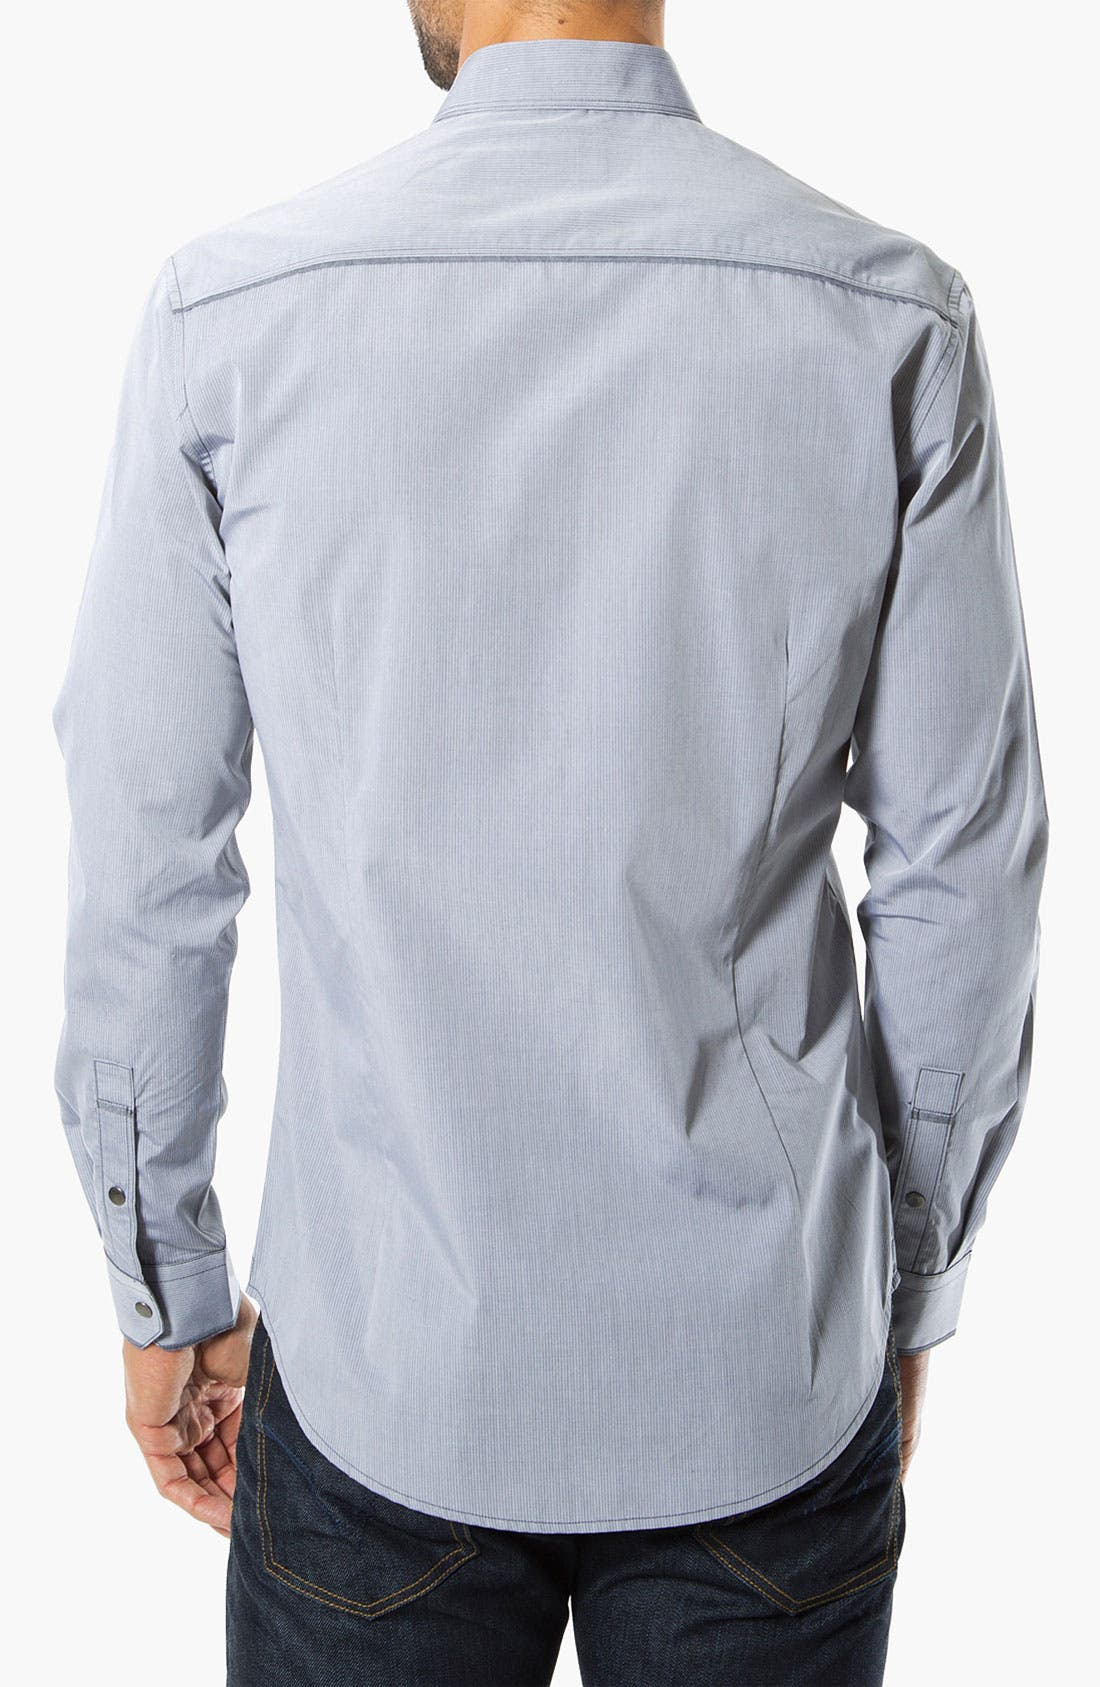 'Shades of Grey' Woven Sport Shirt,                             Alternate thumbnail 2, color,                             Grey